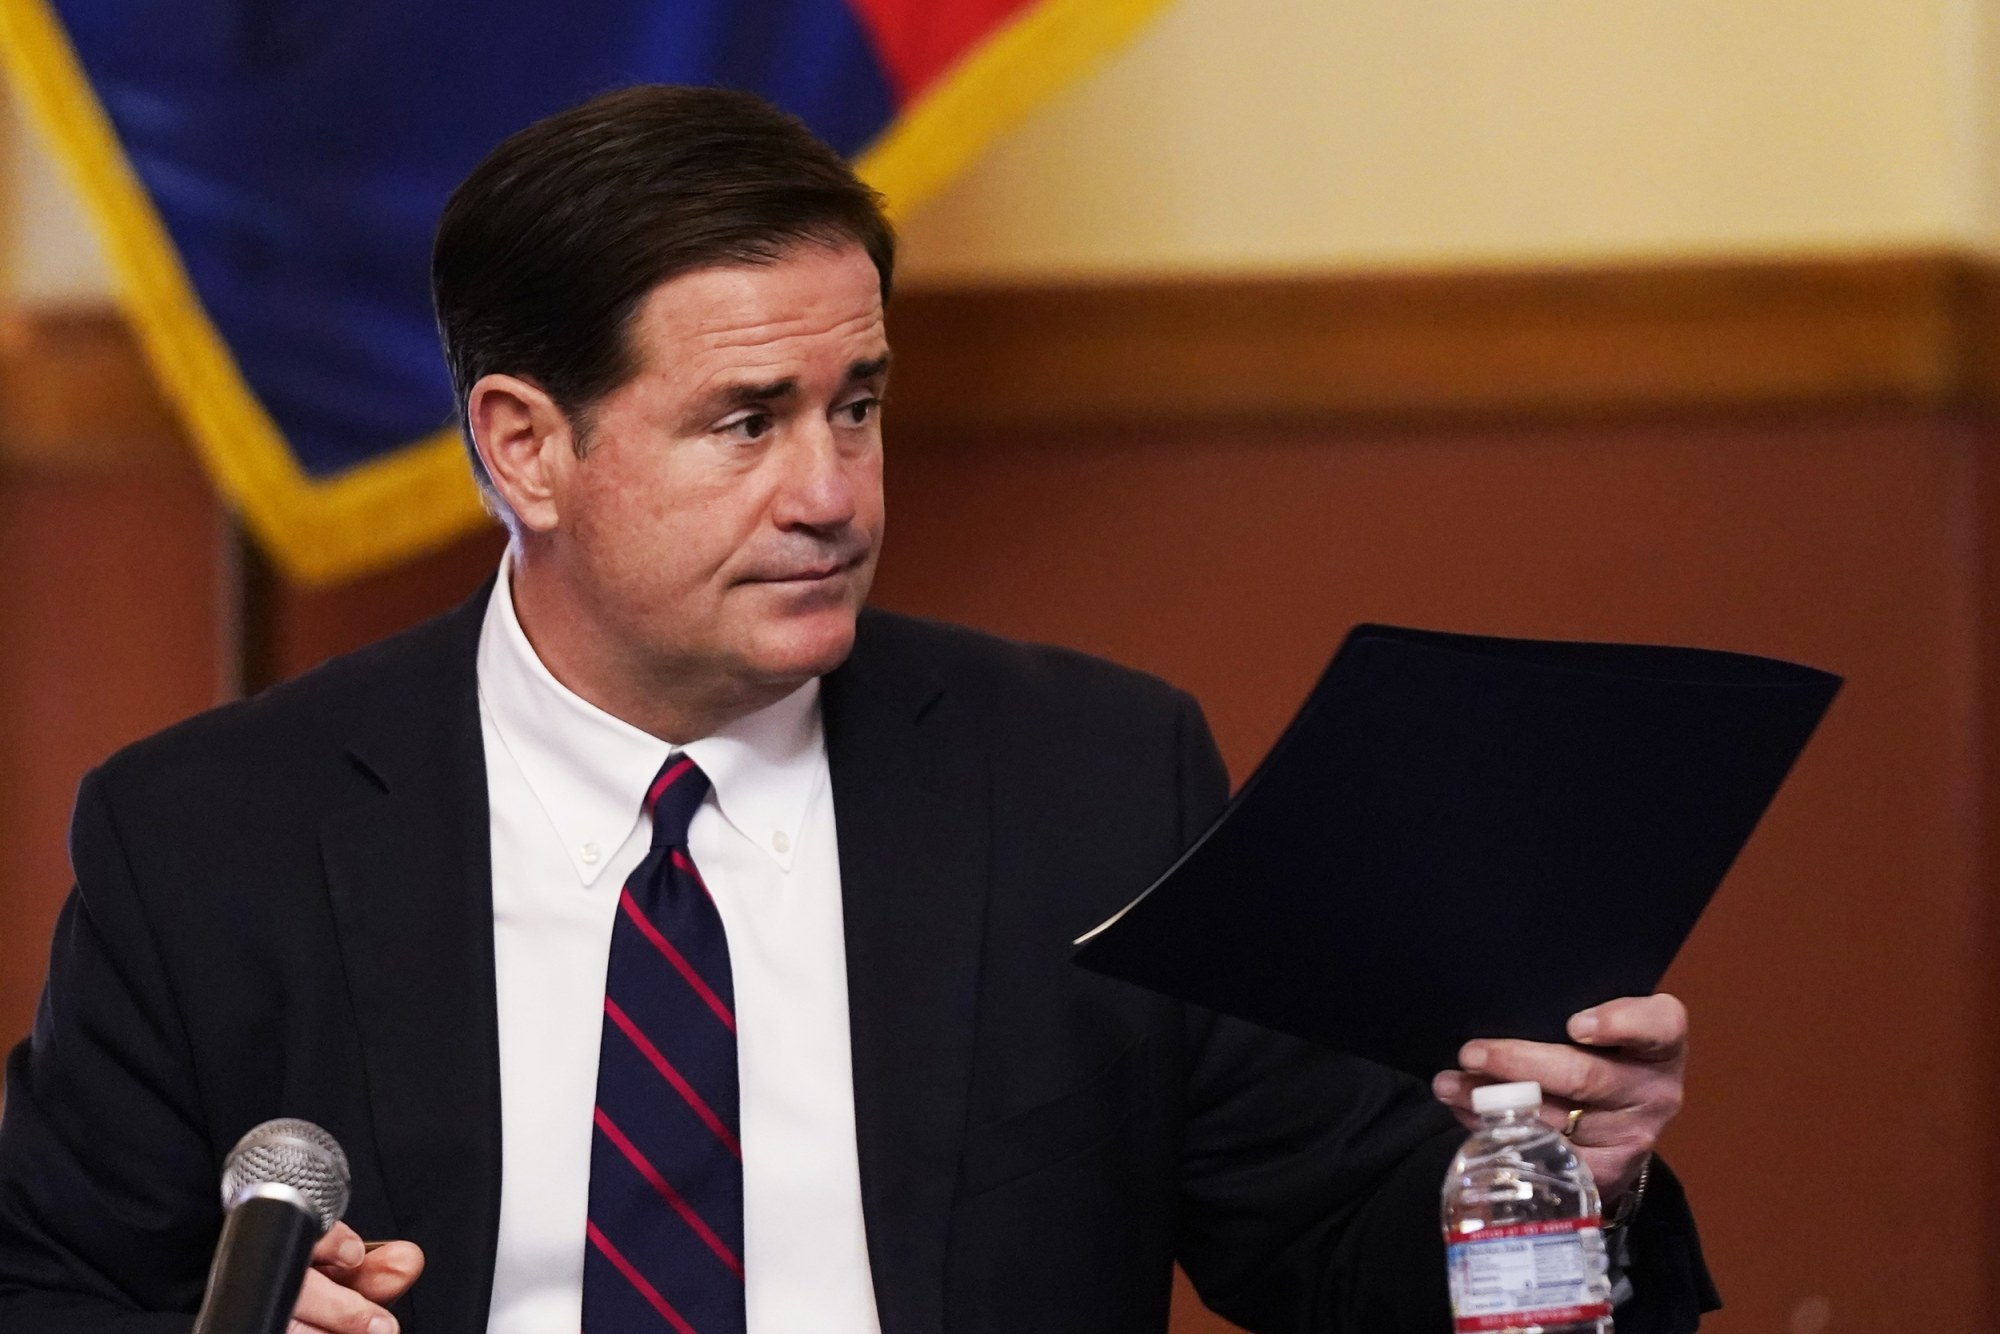 Arizona Governor Doug Ducey rolls back several COVID-19 safety measures like masks and dining restrictions